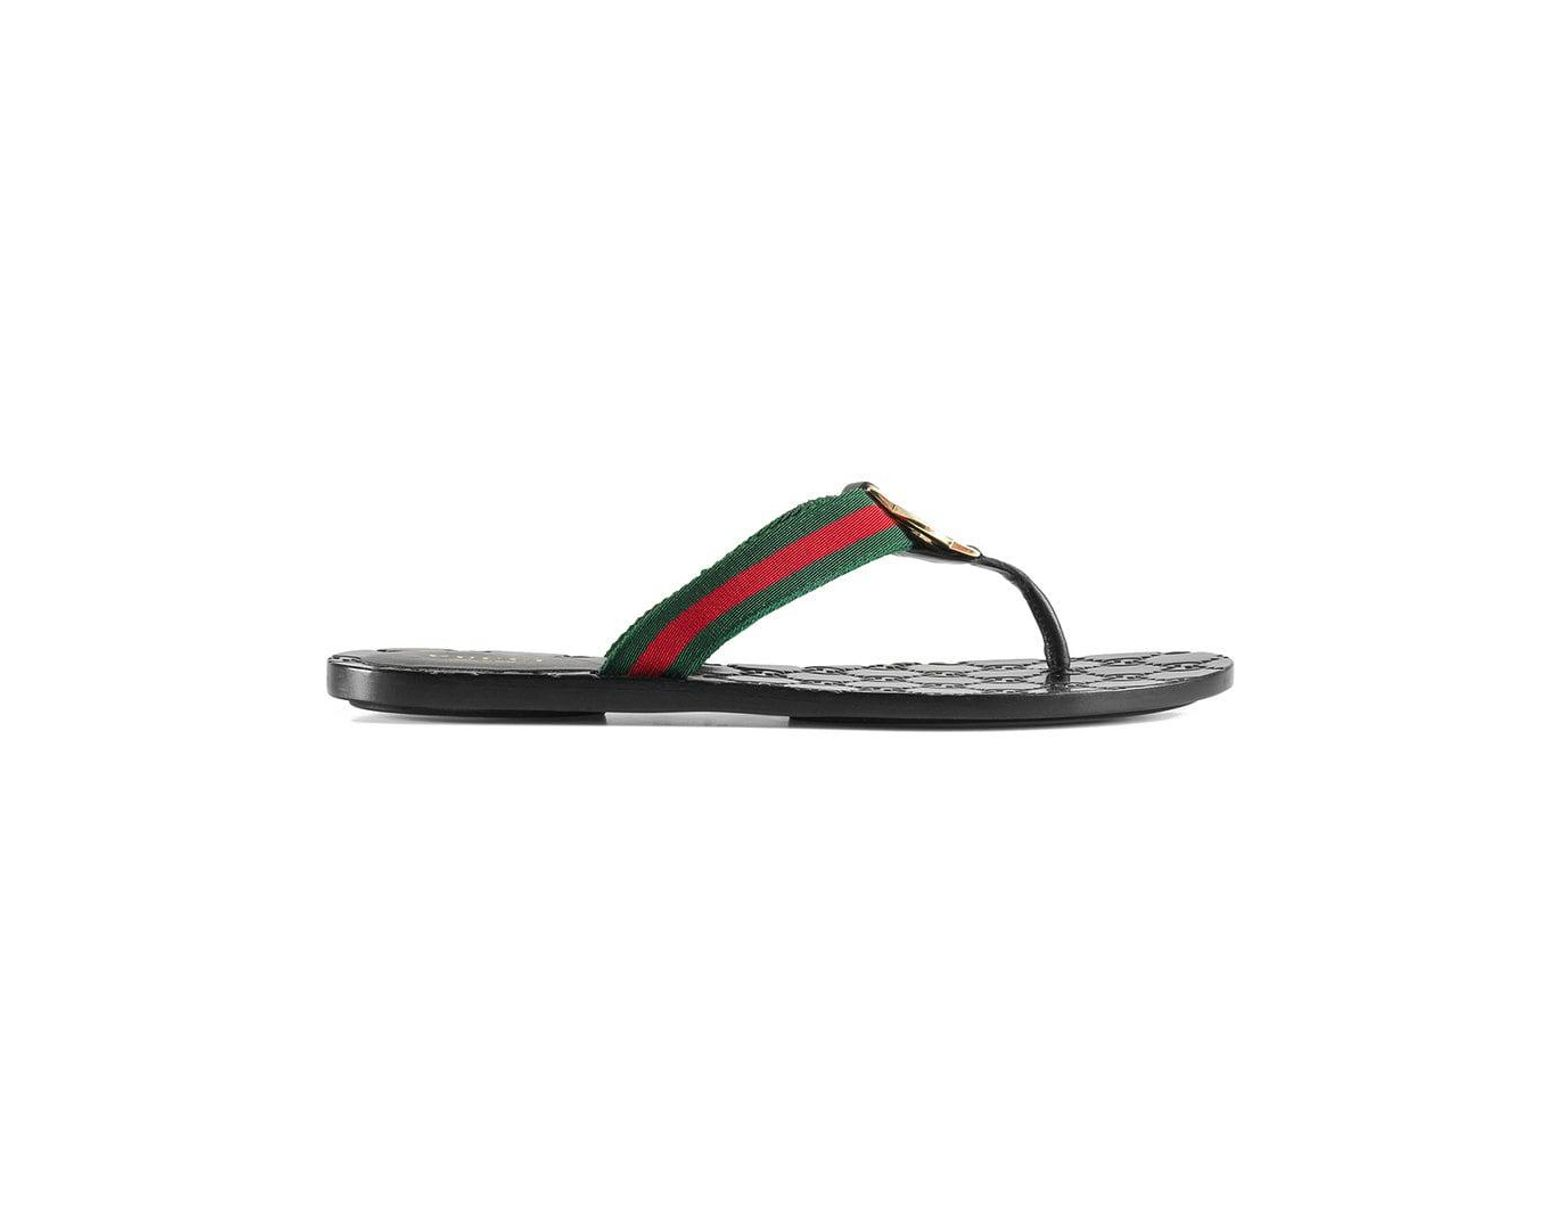 5cdc2abf83ea Lyst - Gucci GG Thong Web Sandal in Black